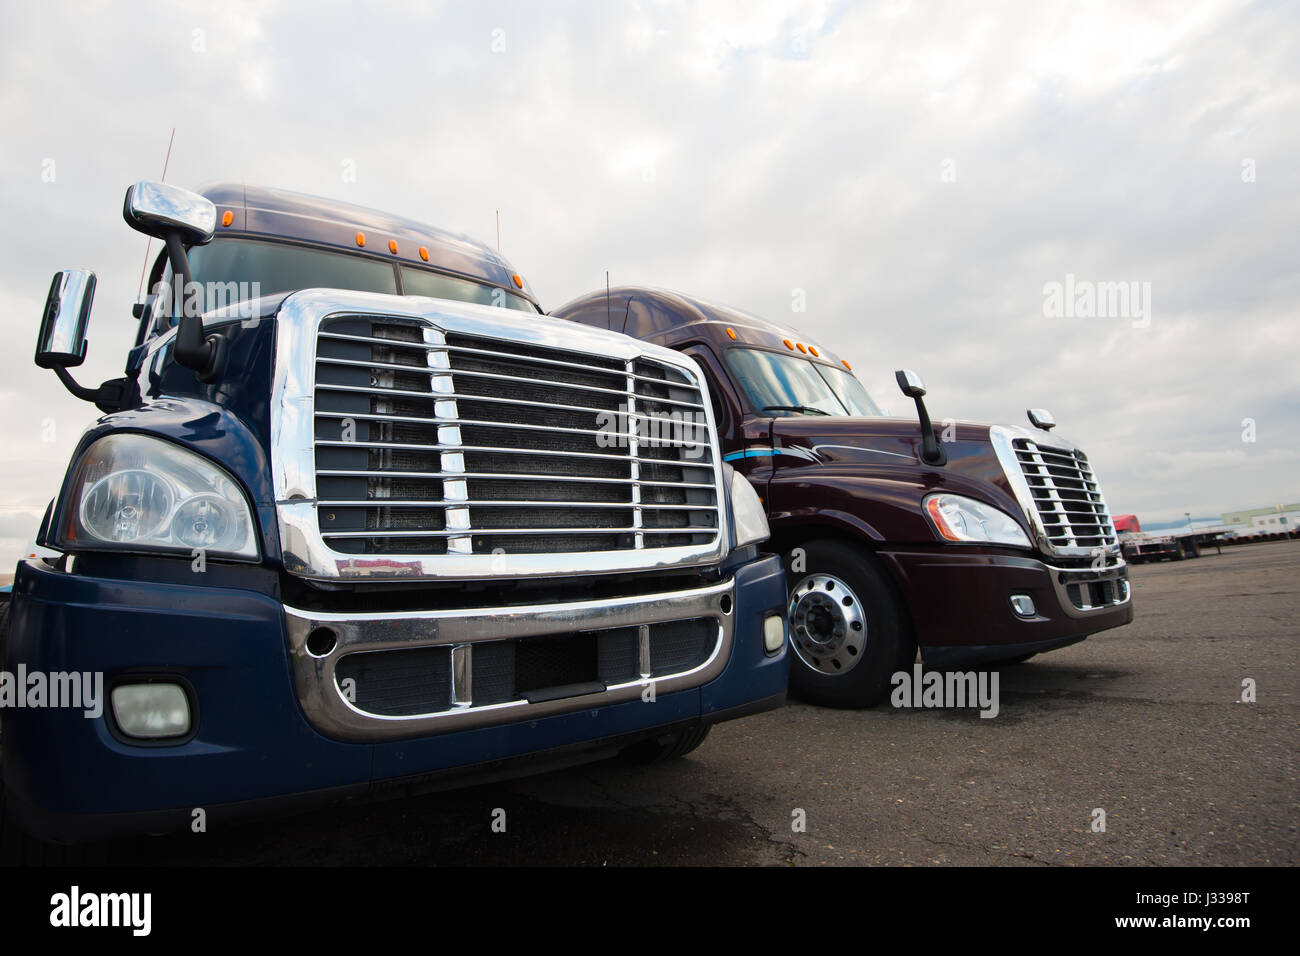 Grilles and headlights of modern semi trucks like the eyes and mouth of huge monsters, bristling gloss chrome lined - Stock Image